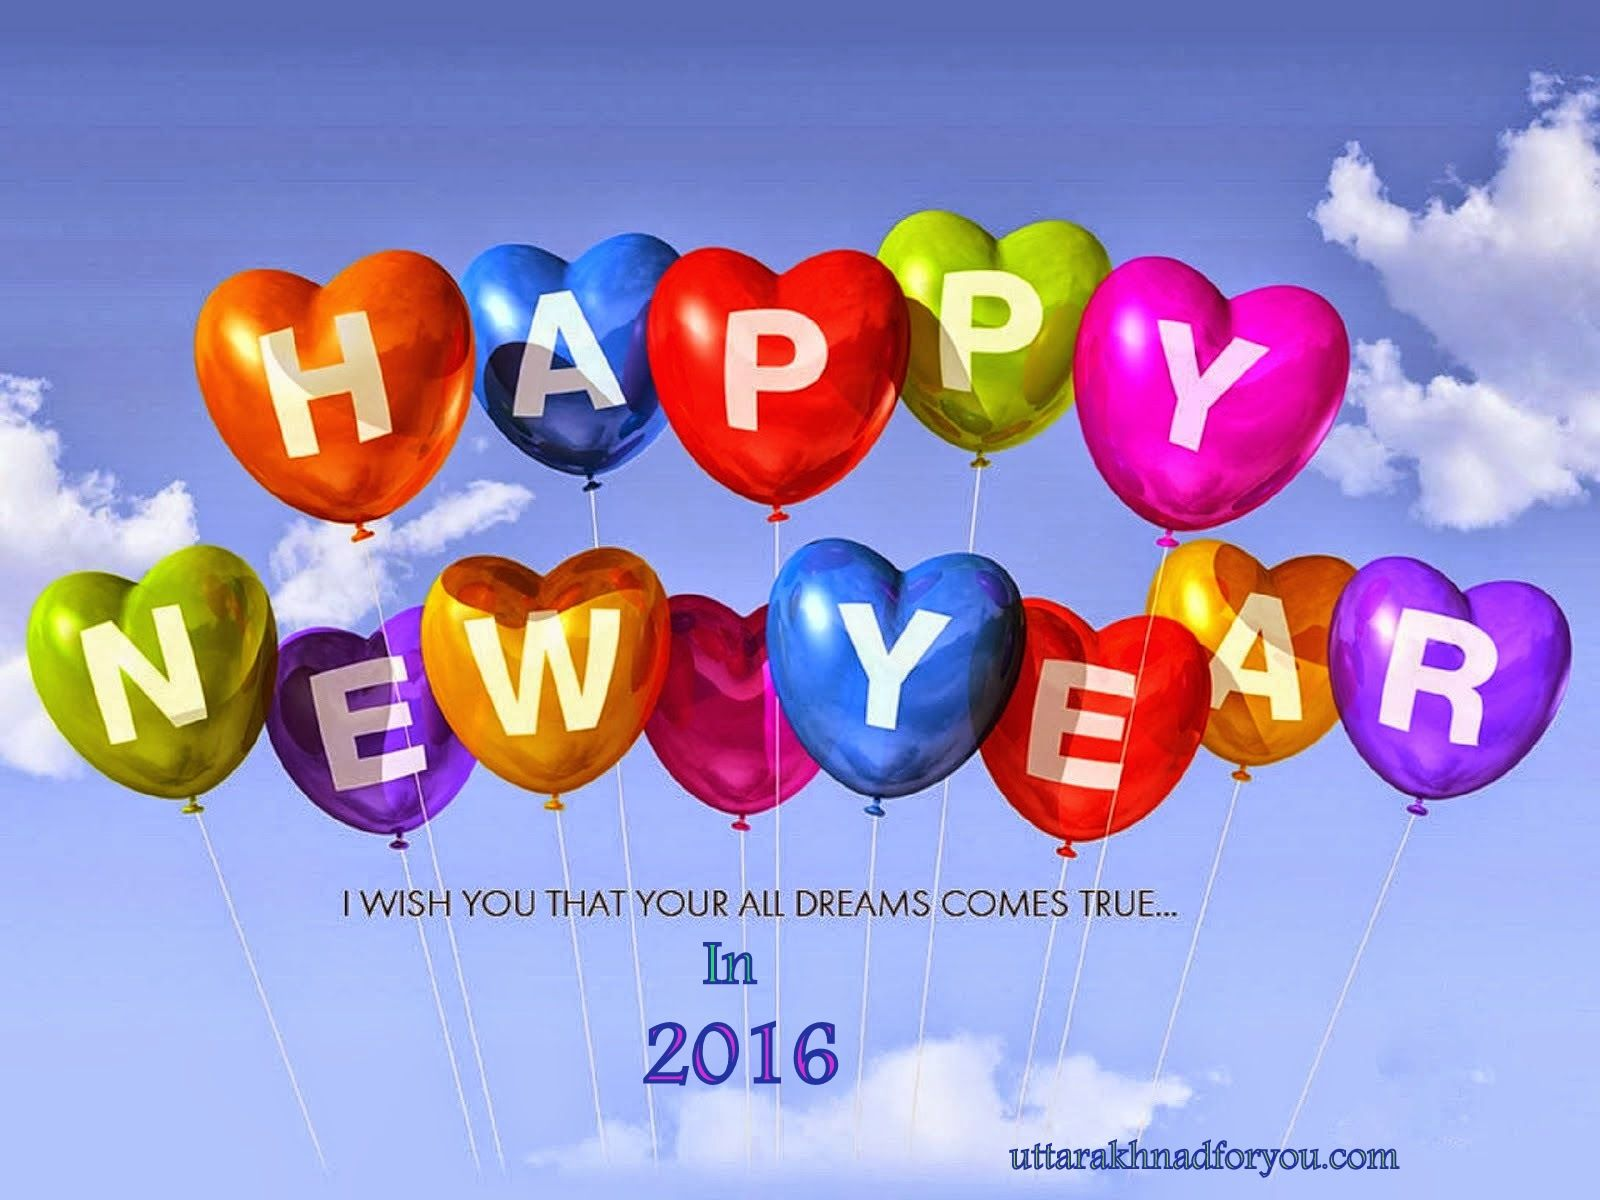 happy new year latest 2016 wallpapers hd wallpapers 3d wallpapers